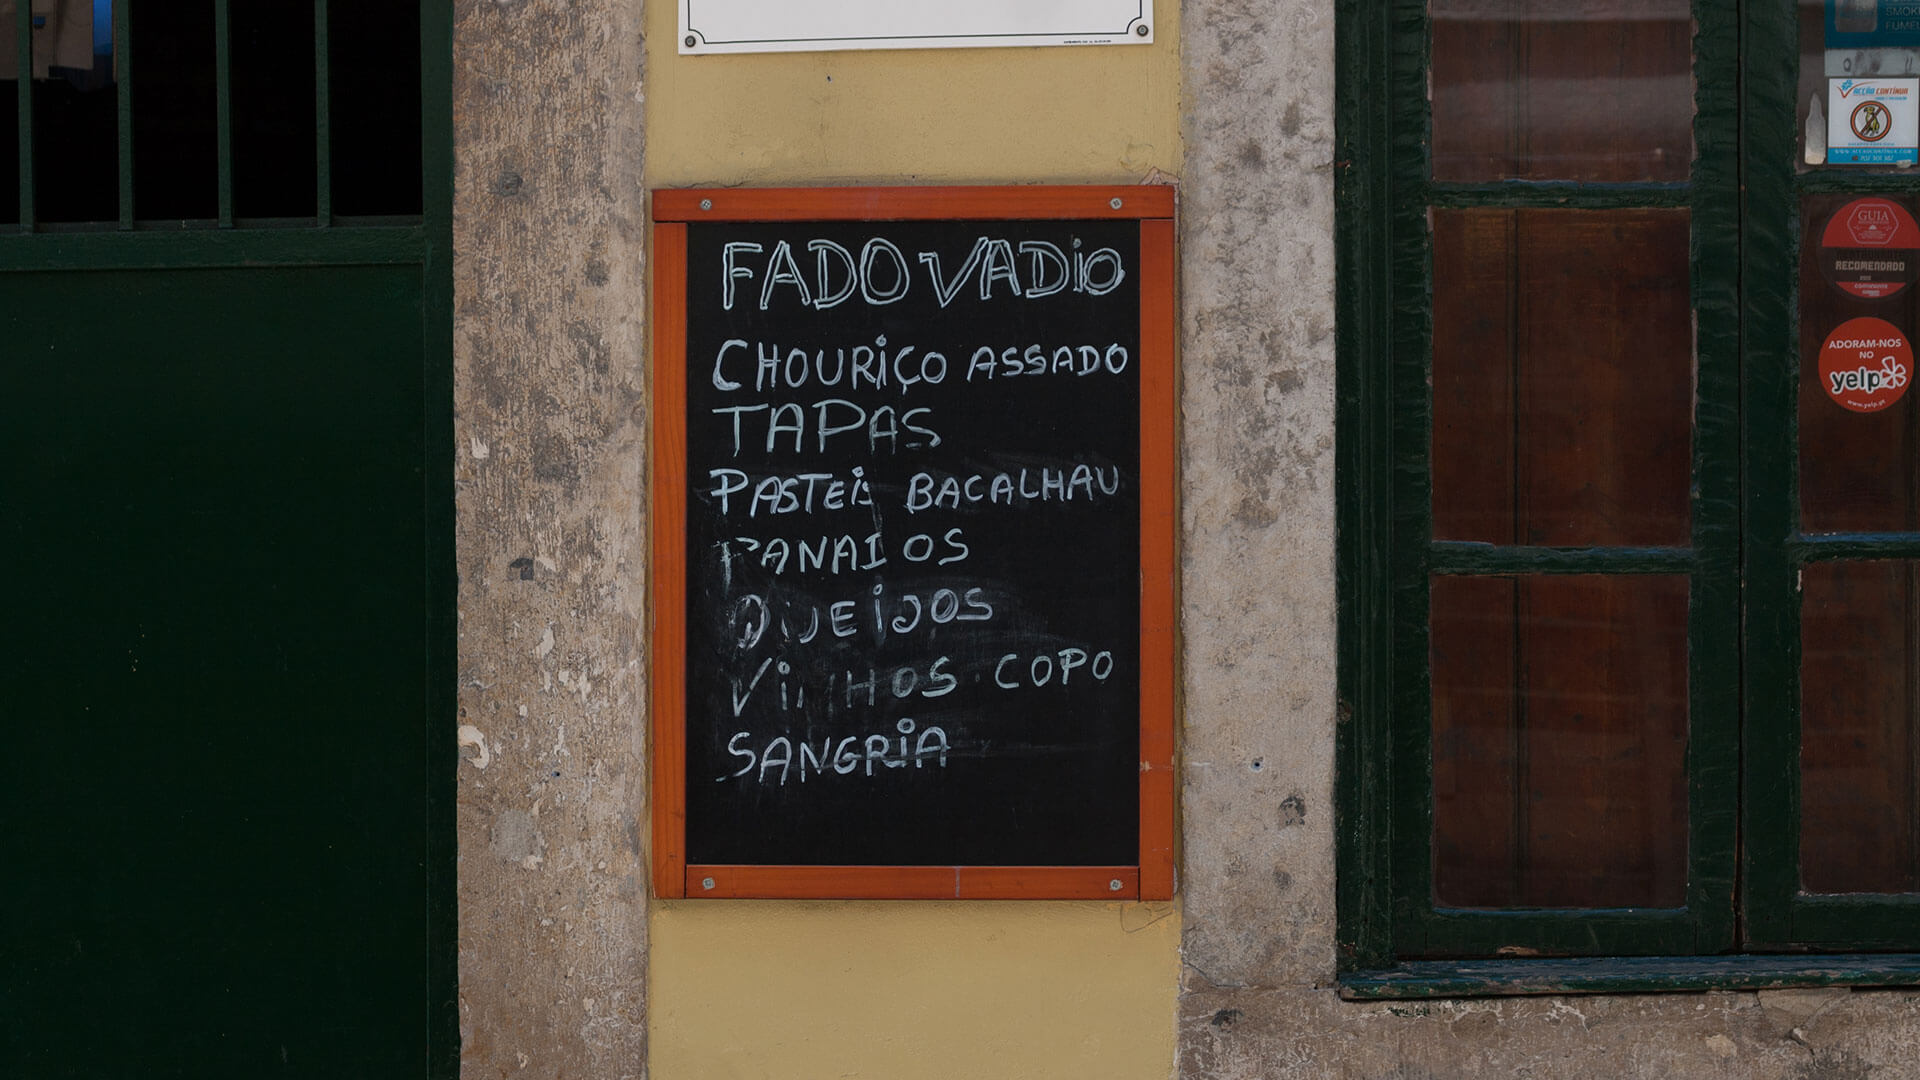 """Tasca do Chico"" in Bairro Alto advertises Fado Vadio (amateur fado)"